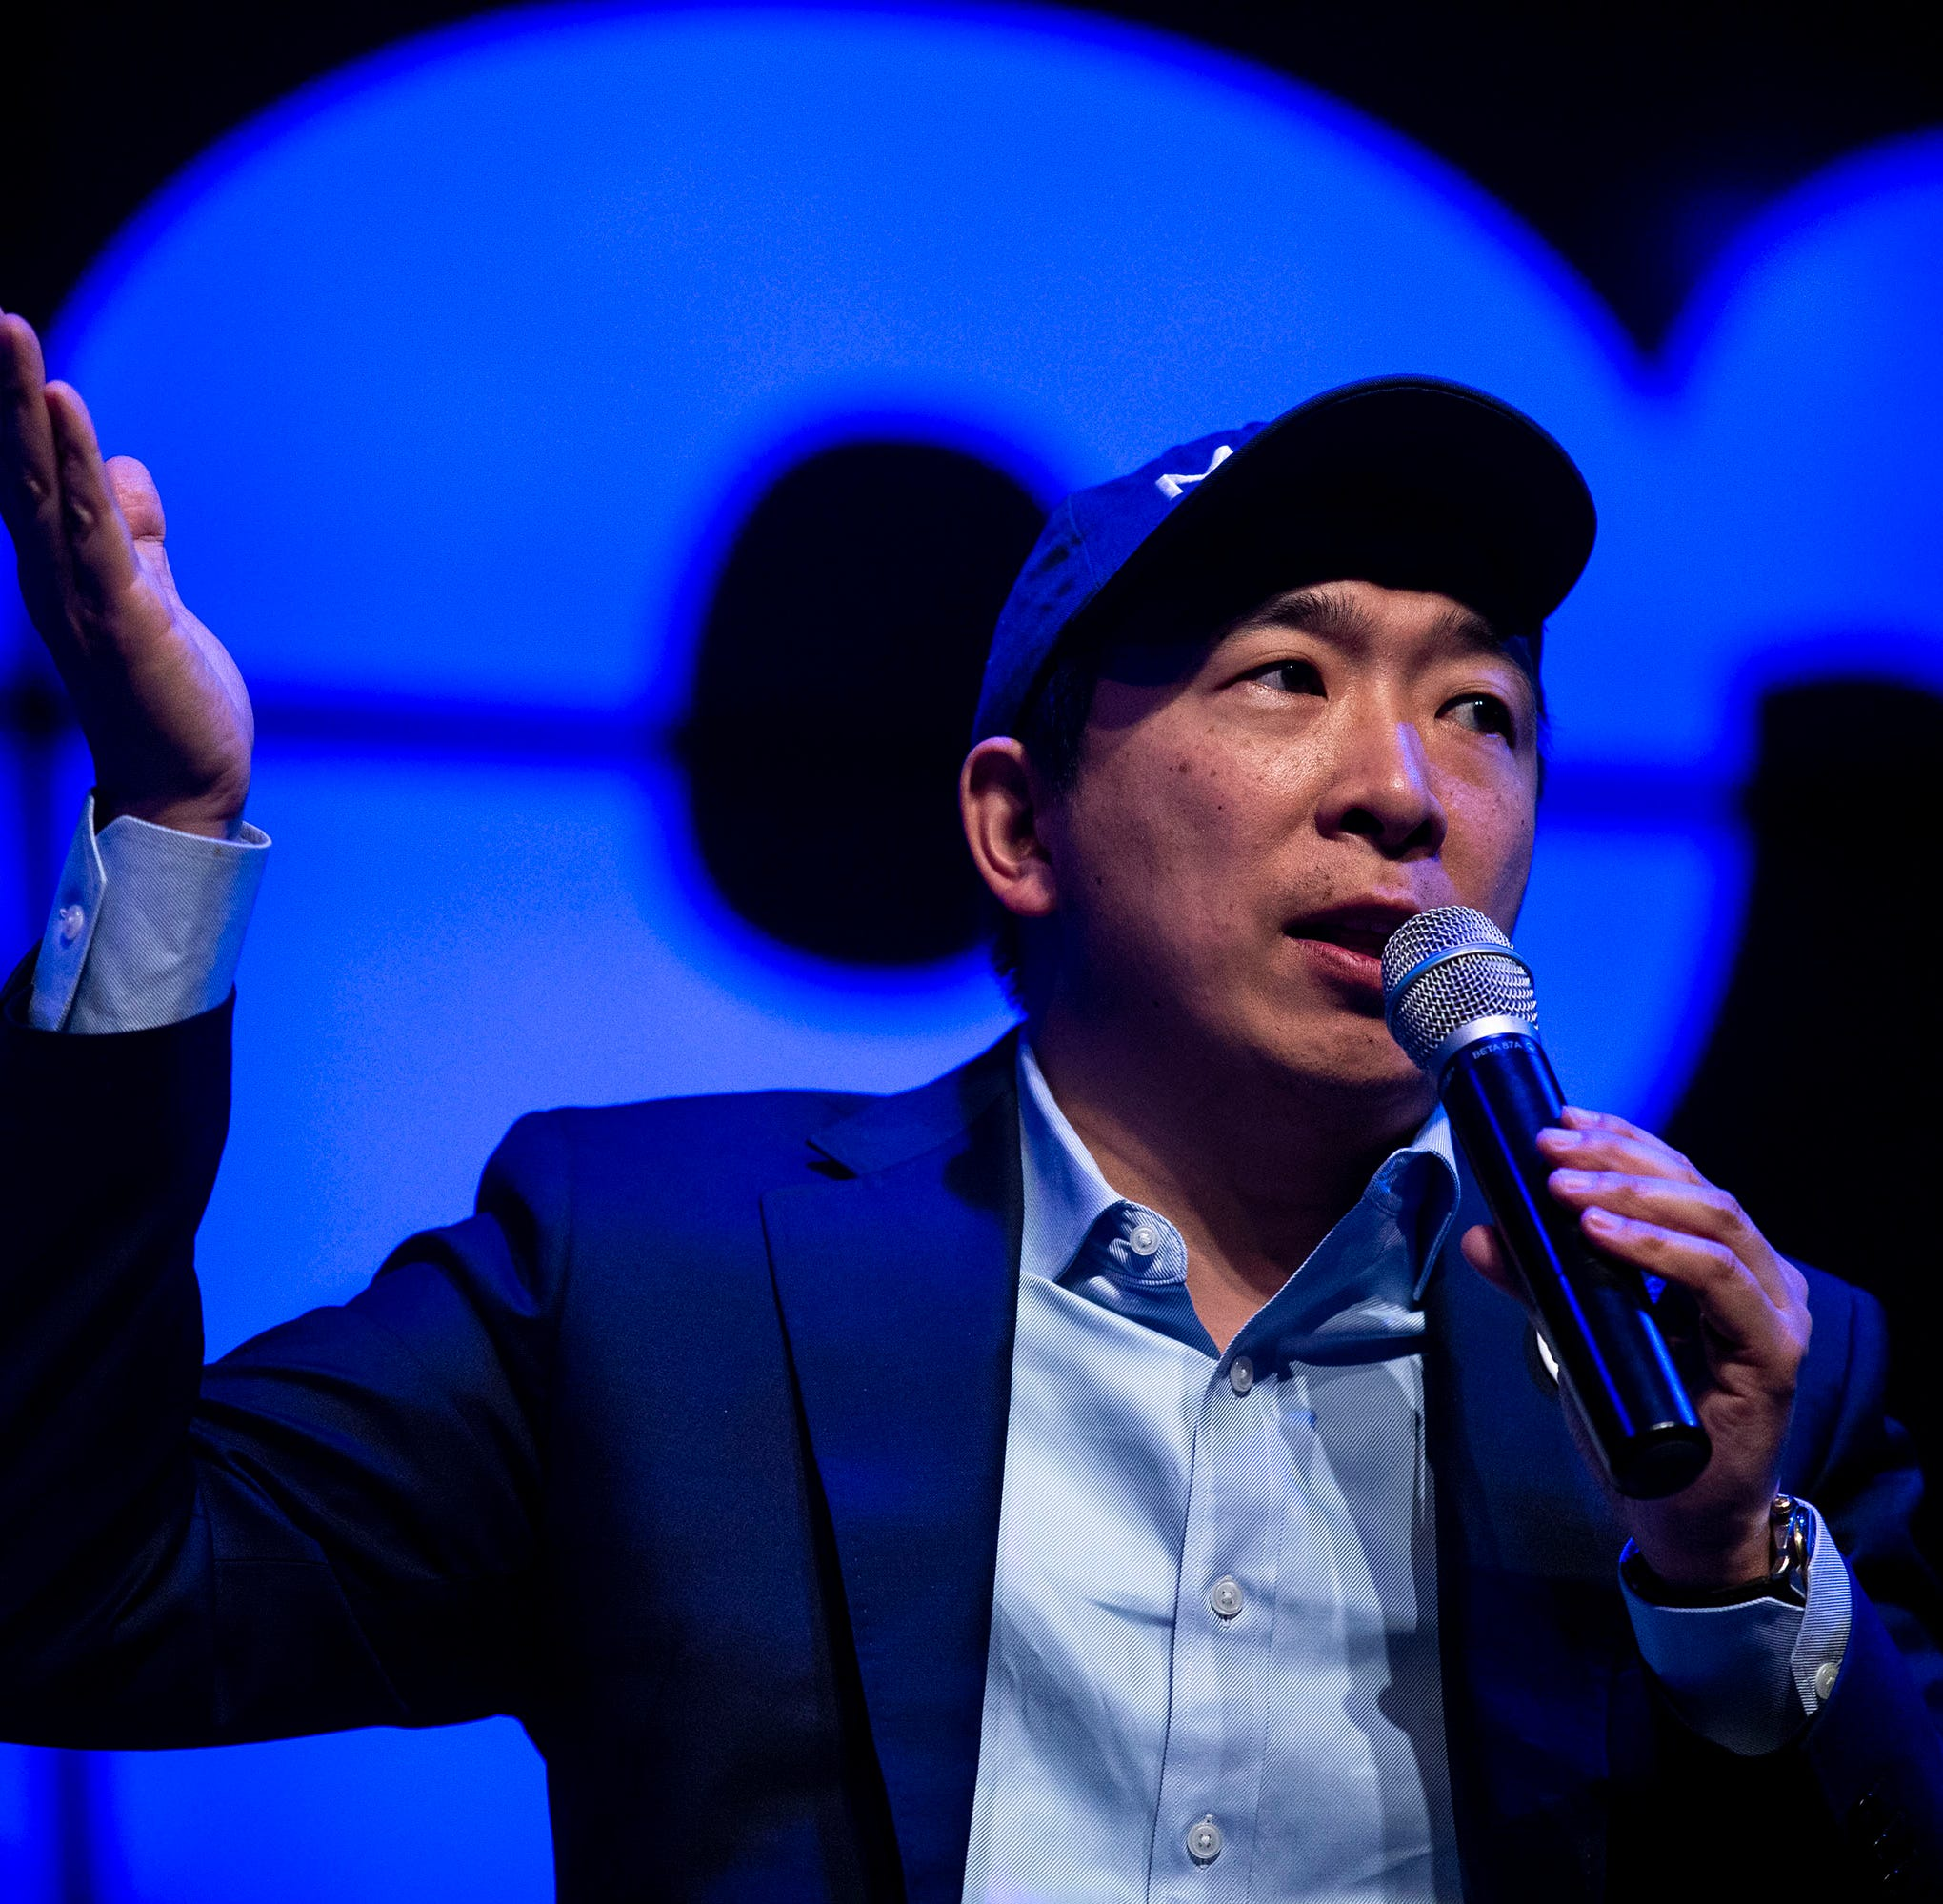 Andrew Yang's presidential campaign neglected to disclose his $1,000 gifts to a New Hampshire family